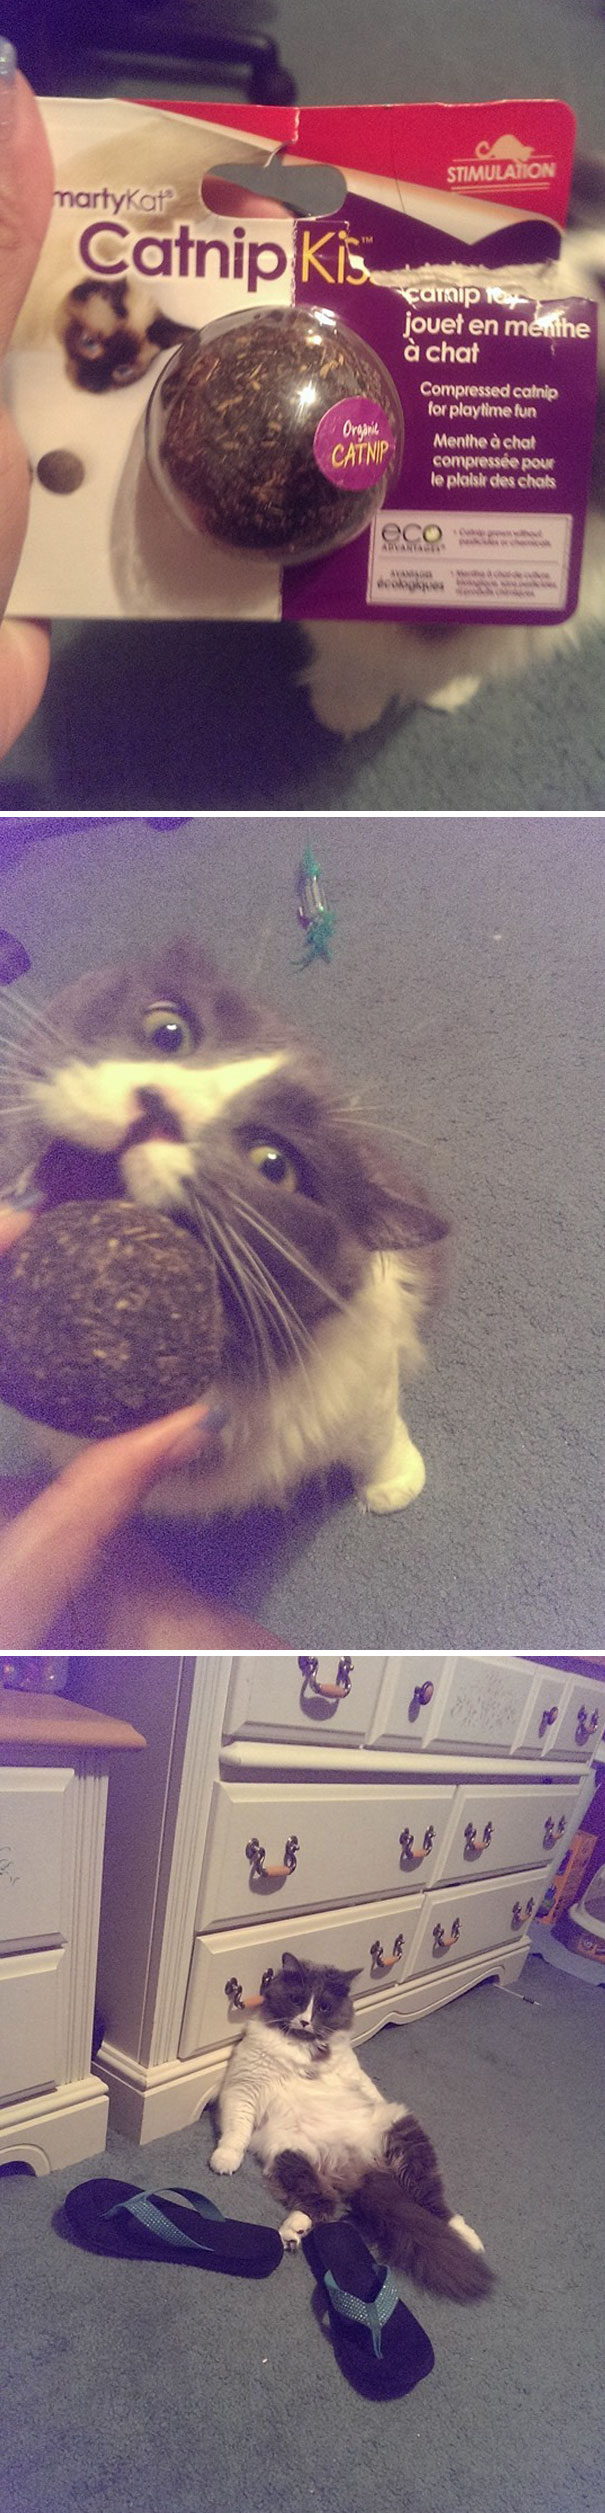 My Sister Decided To Give Her Cat Some Catnip